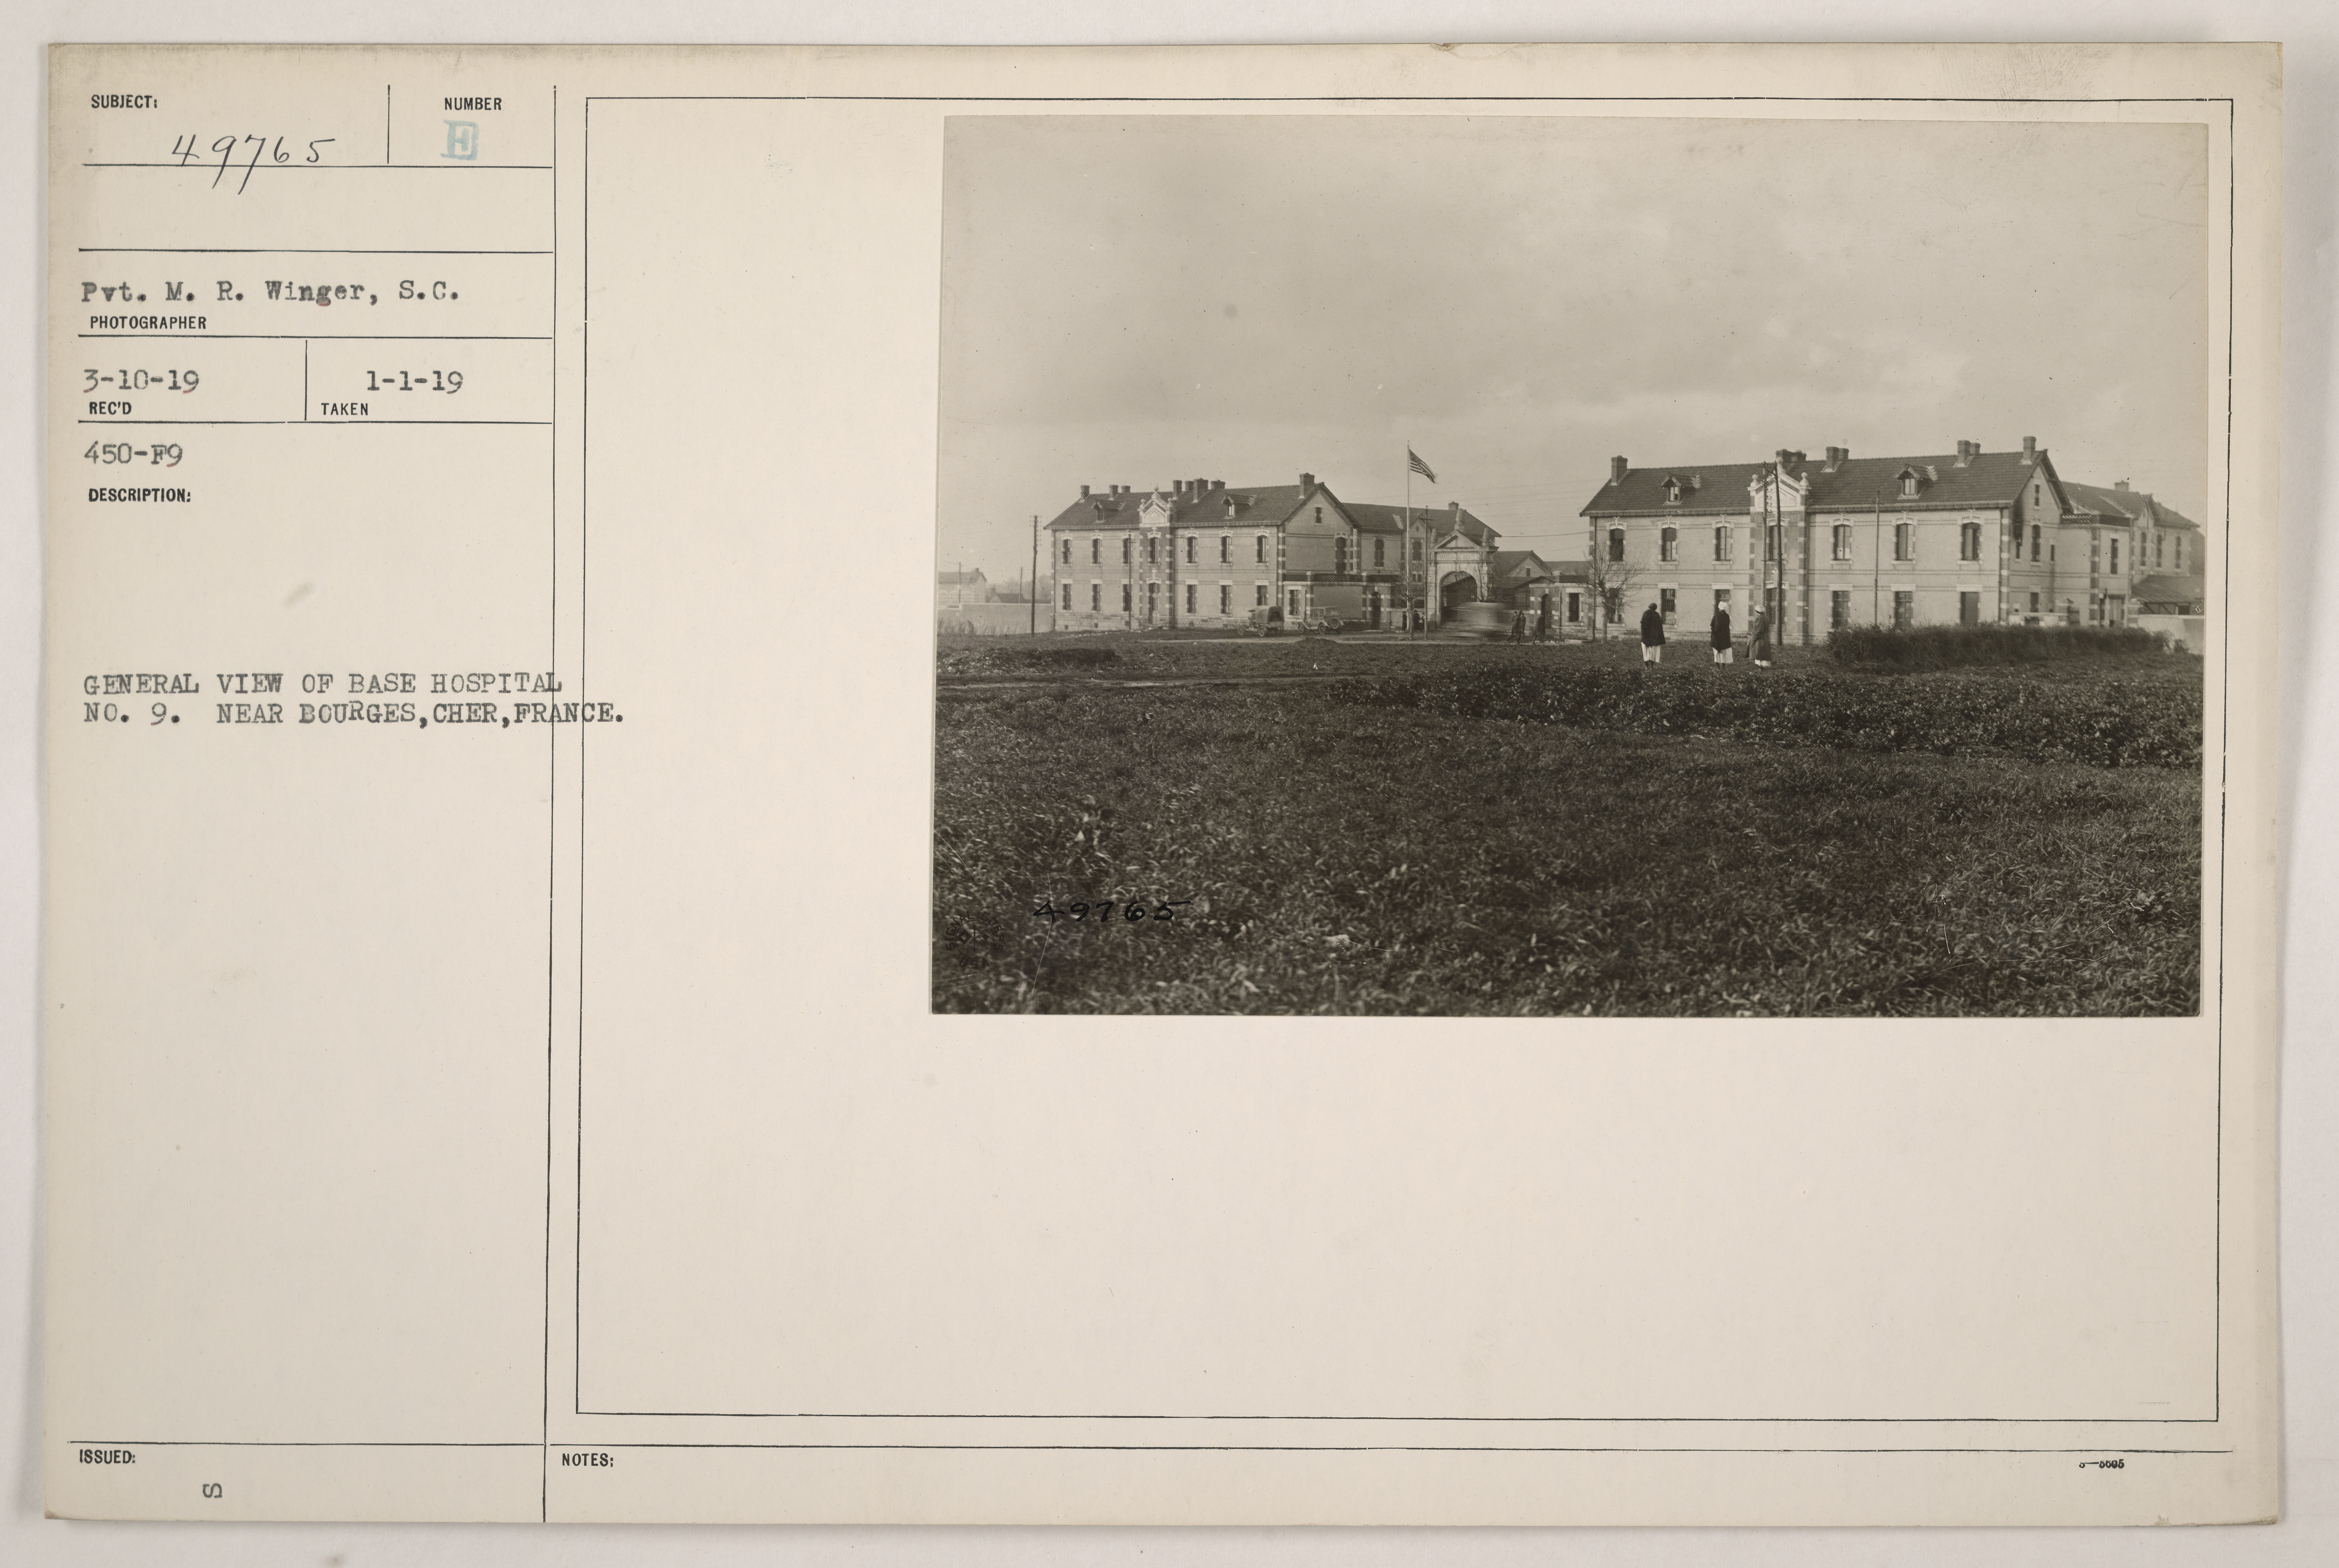 General view of base hospital No. 9, near Bourges, Cher, France